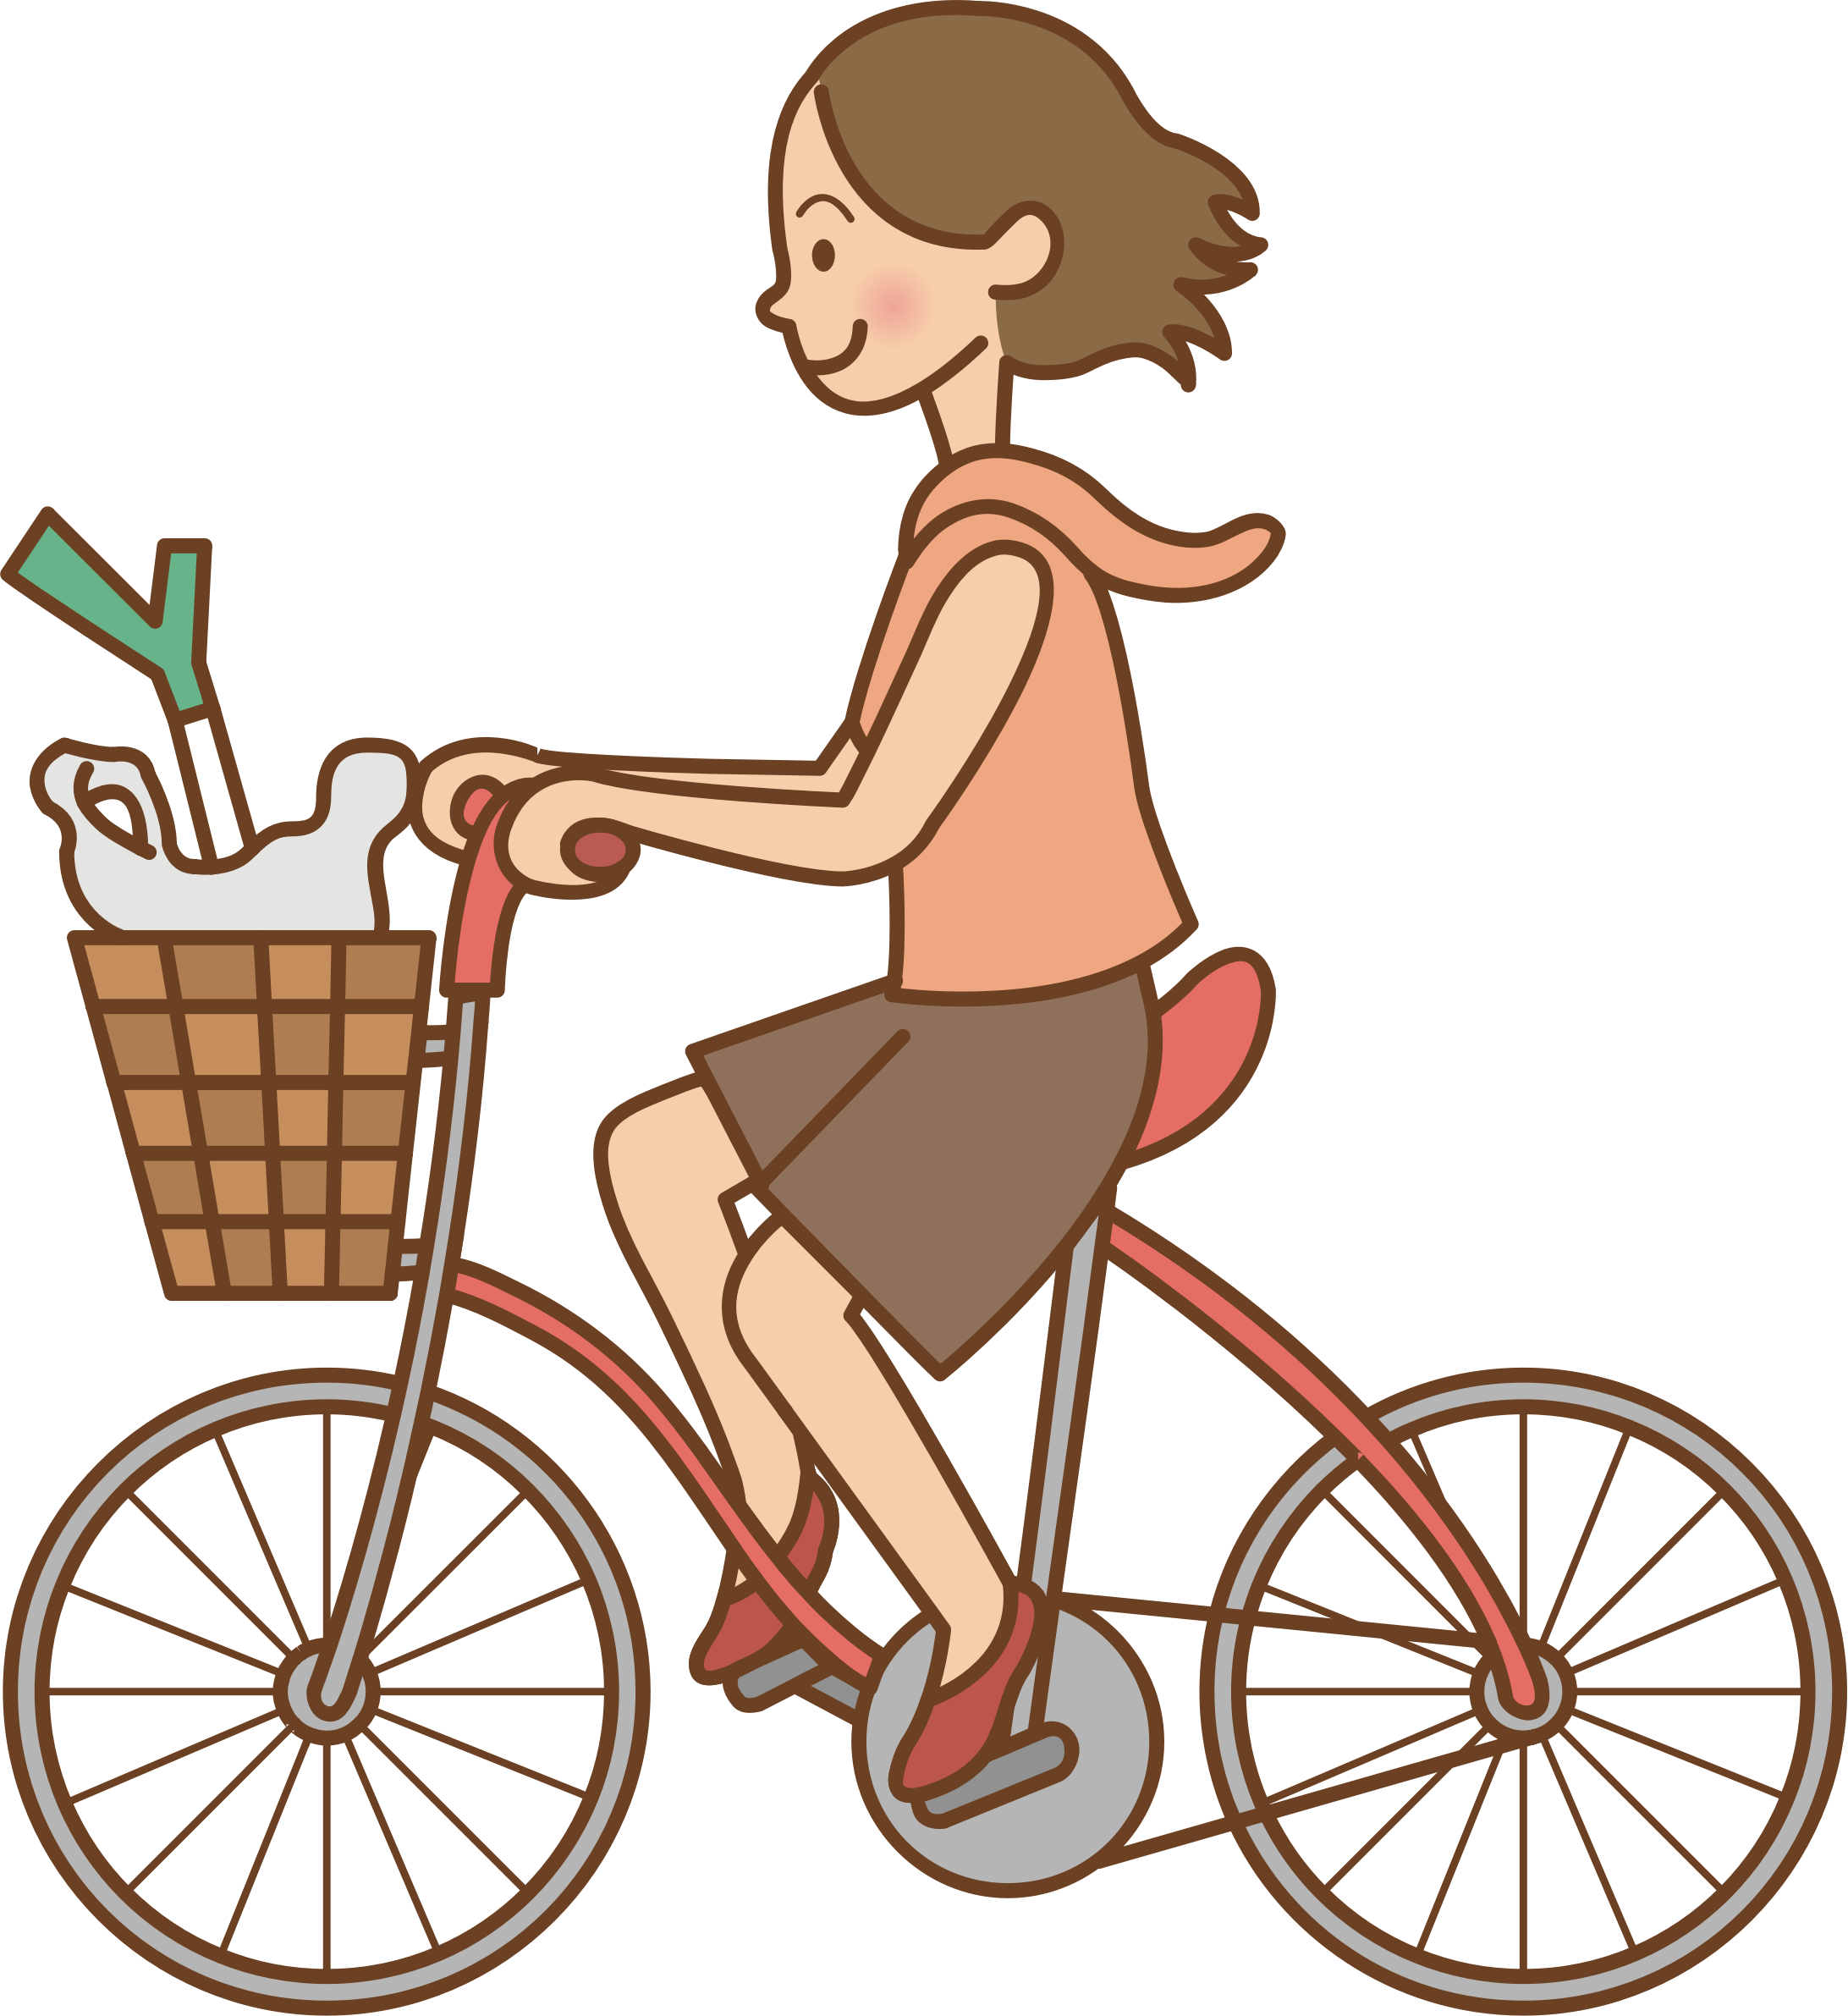 Riding bike png. Woman a bicycle icons